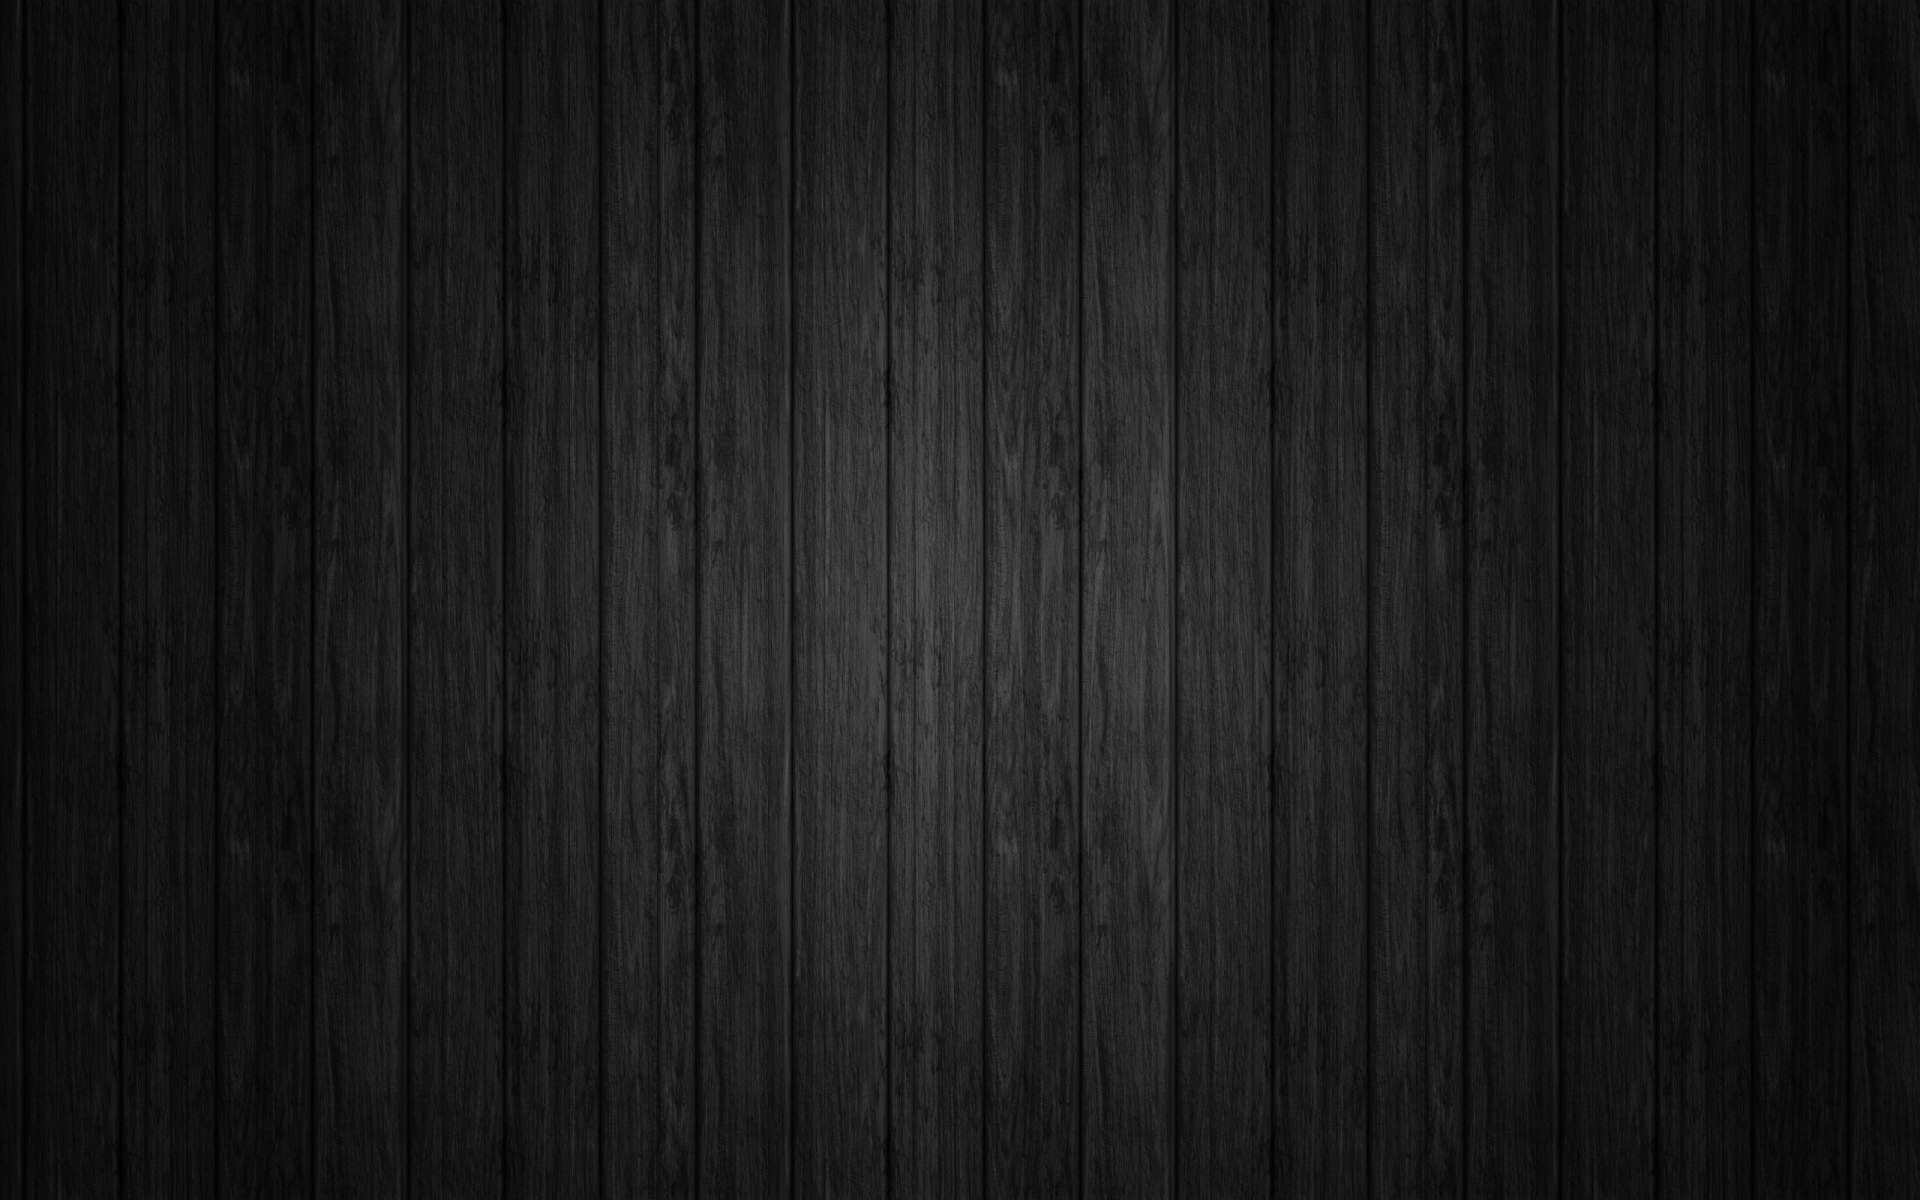 black texture wallpaper background